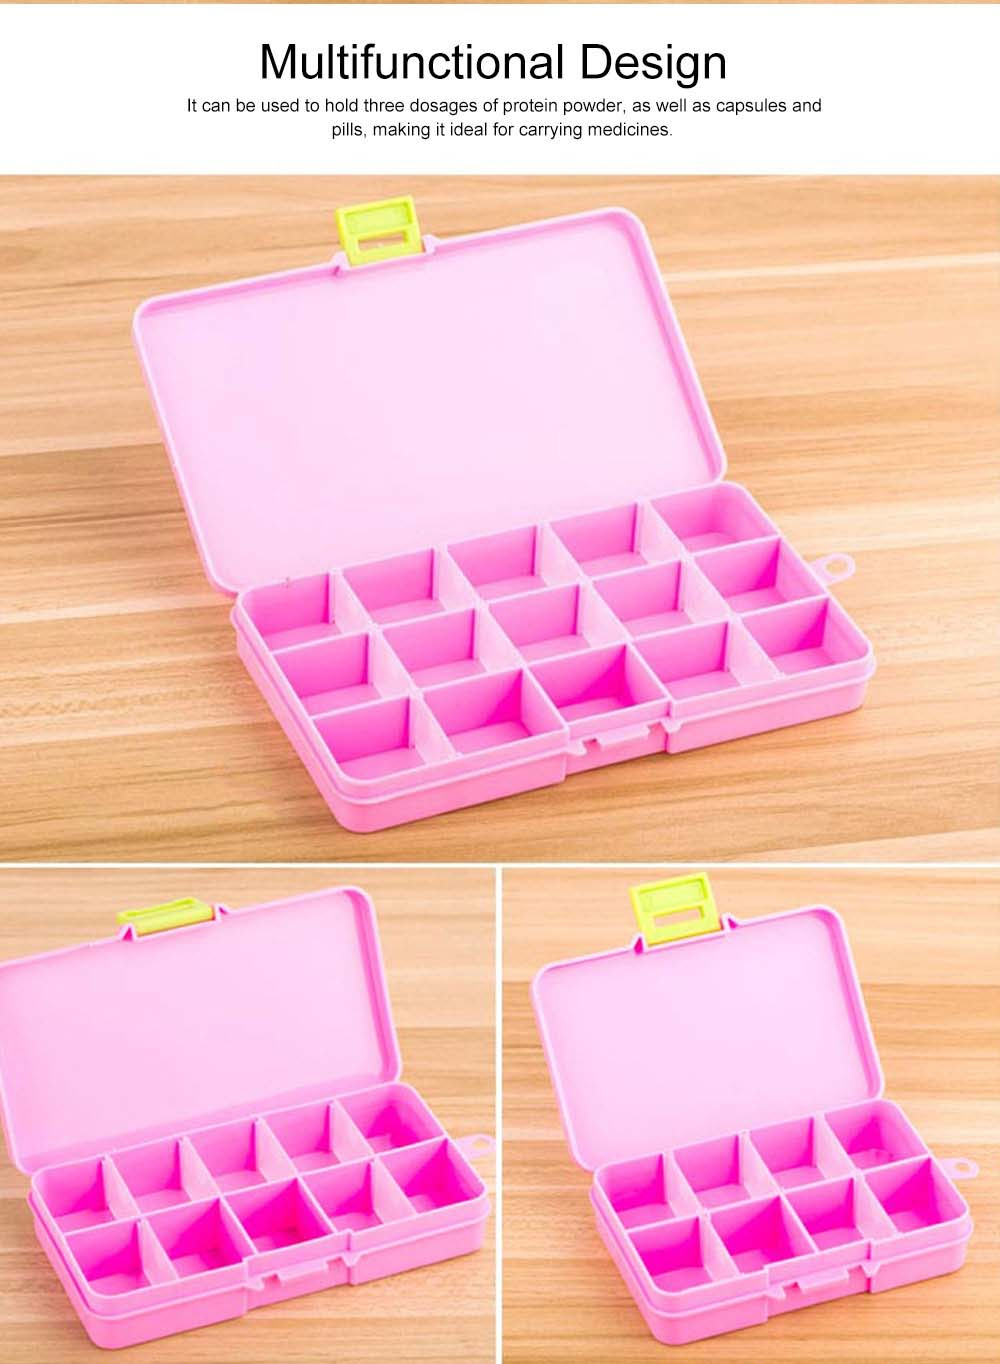 5 Day Weekly Pill Organizer, 15 Slots Large Portable Weekly Pill Case with Movable Partition for Travel Use 3